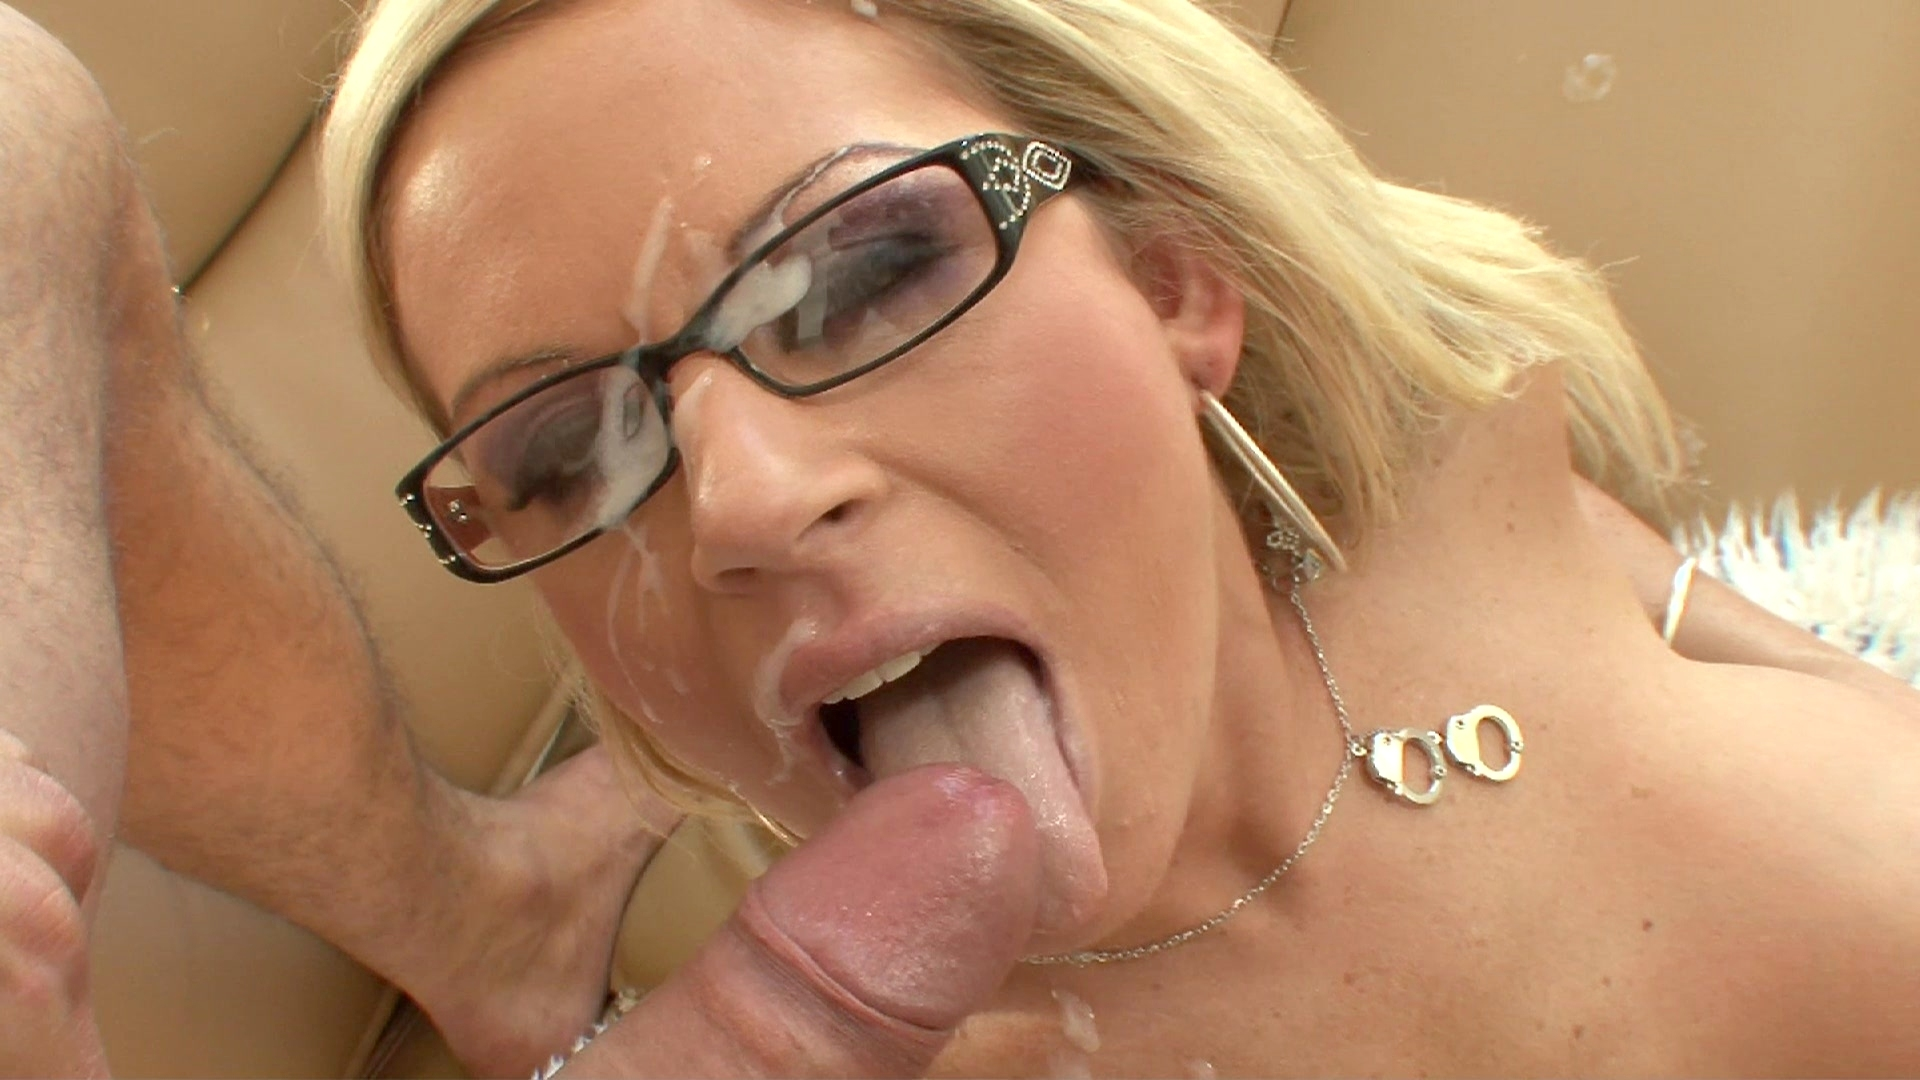 Hot Girl Gave Stranger A Blowjob In The Toilet Of A Shopping Mall She Just Met Him Great Facial